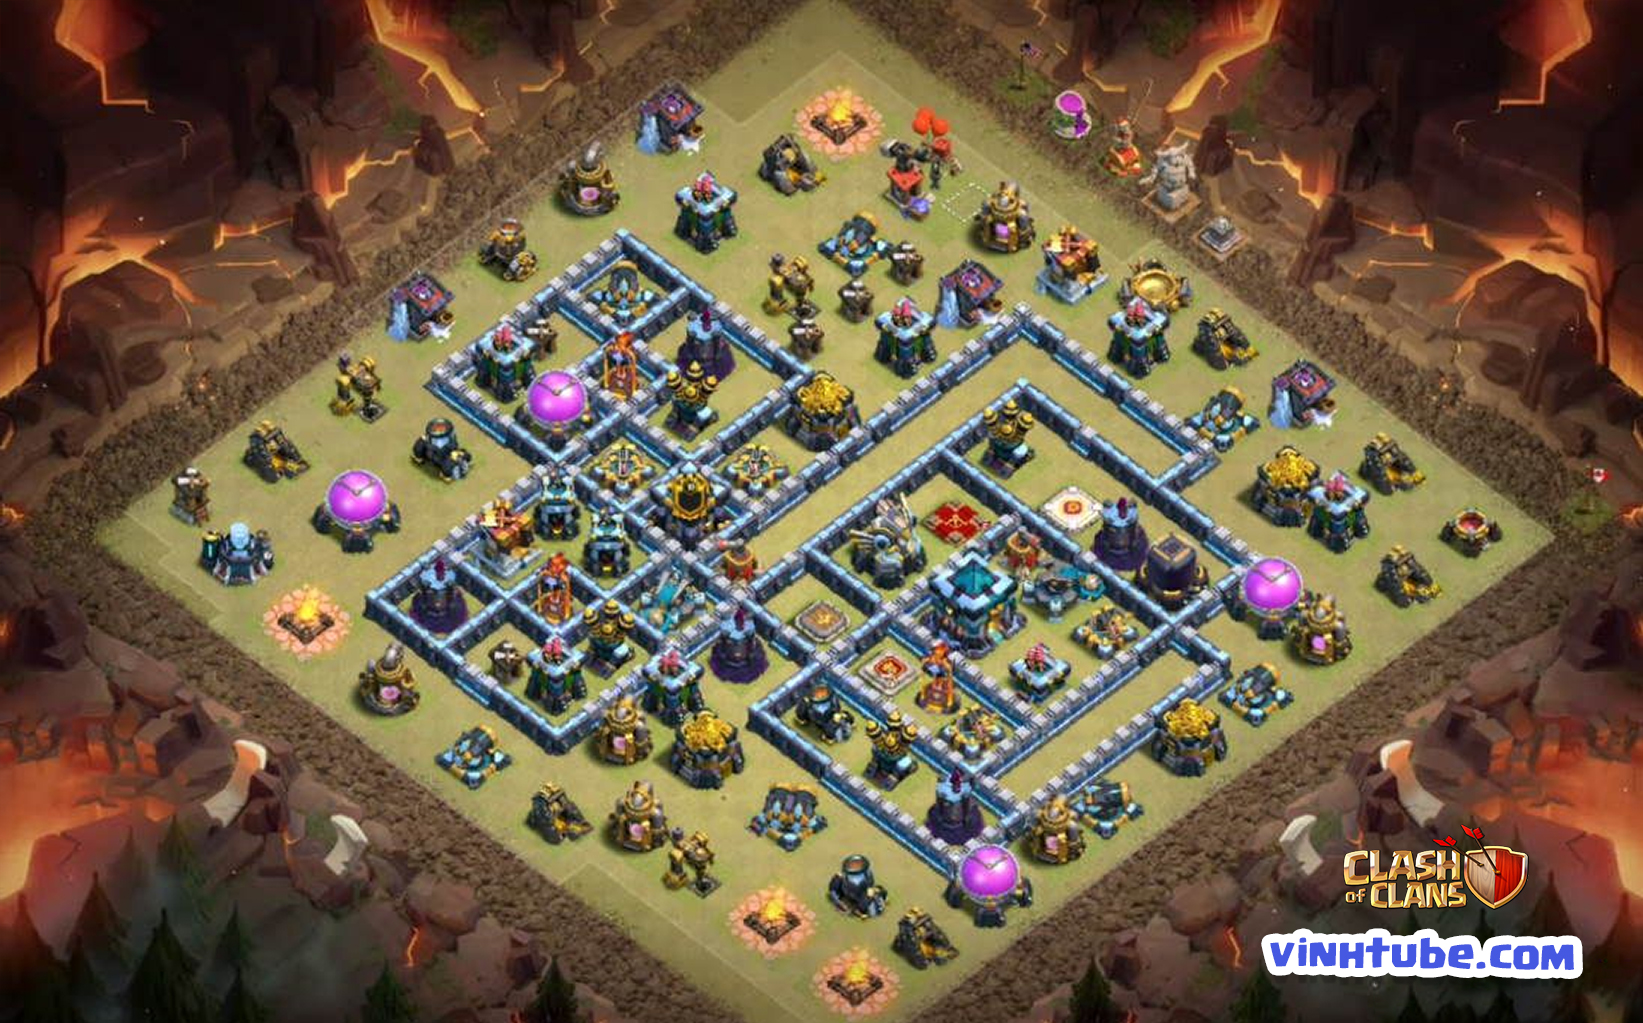 Base Hall 13 mới toanh Thủ WAR, LEAGUE LEGEND chống 3 sao | Clash of Clans